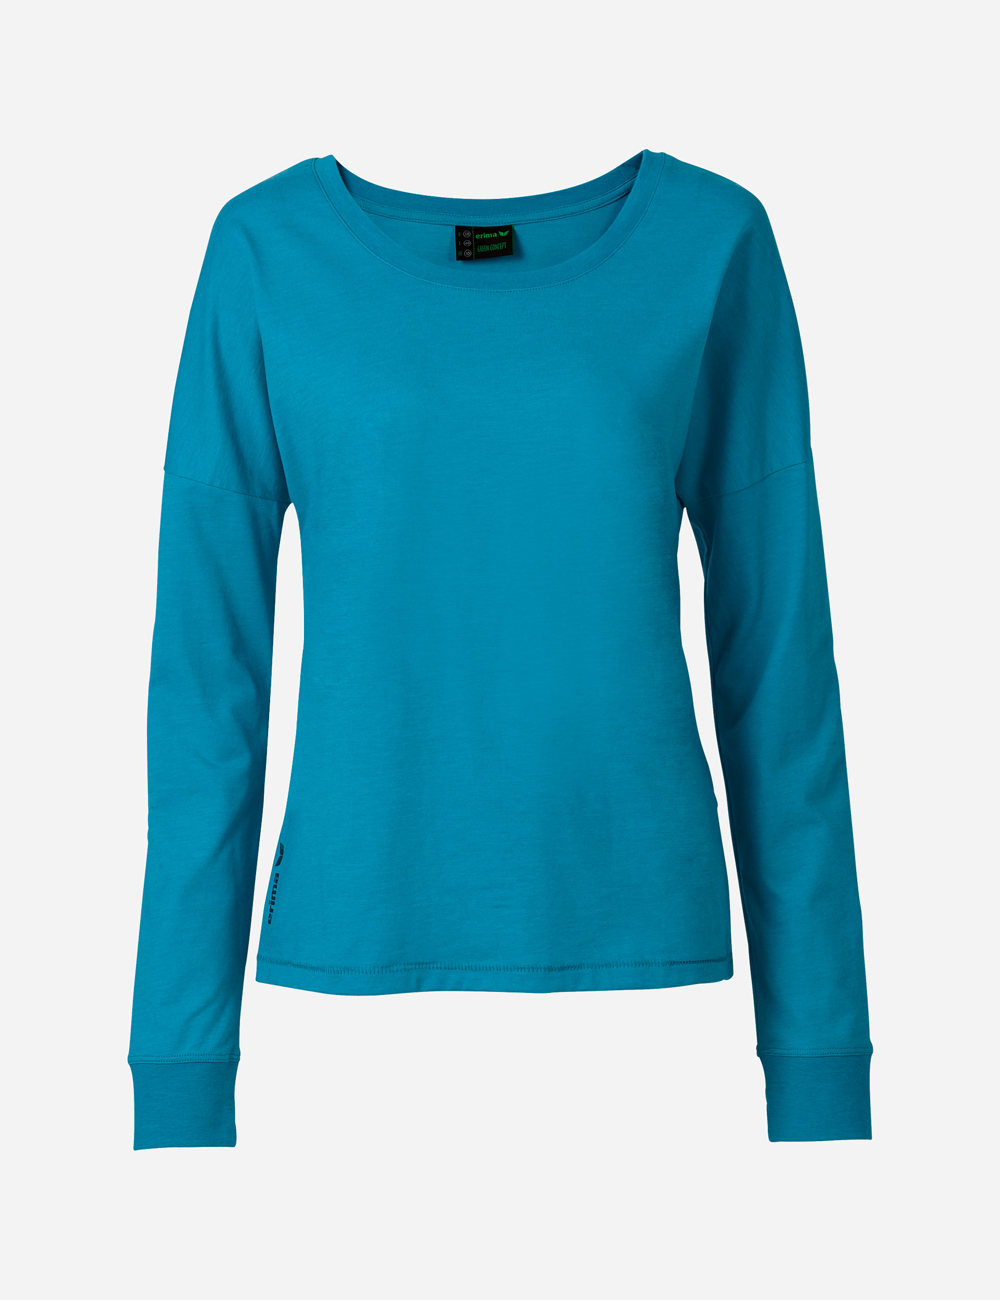 Damen Shirt GREEN TRAINING longsleeve